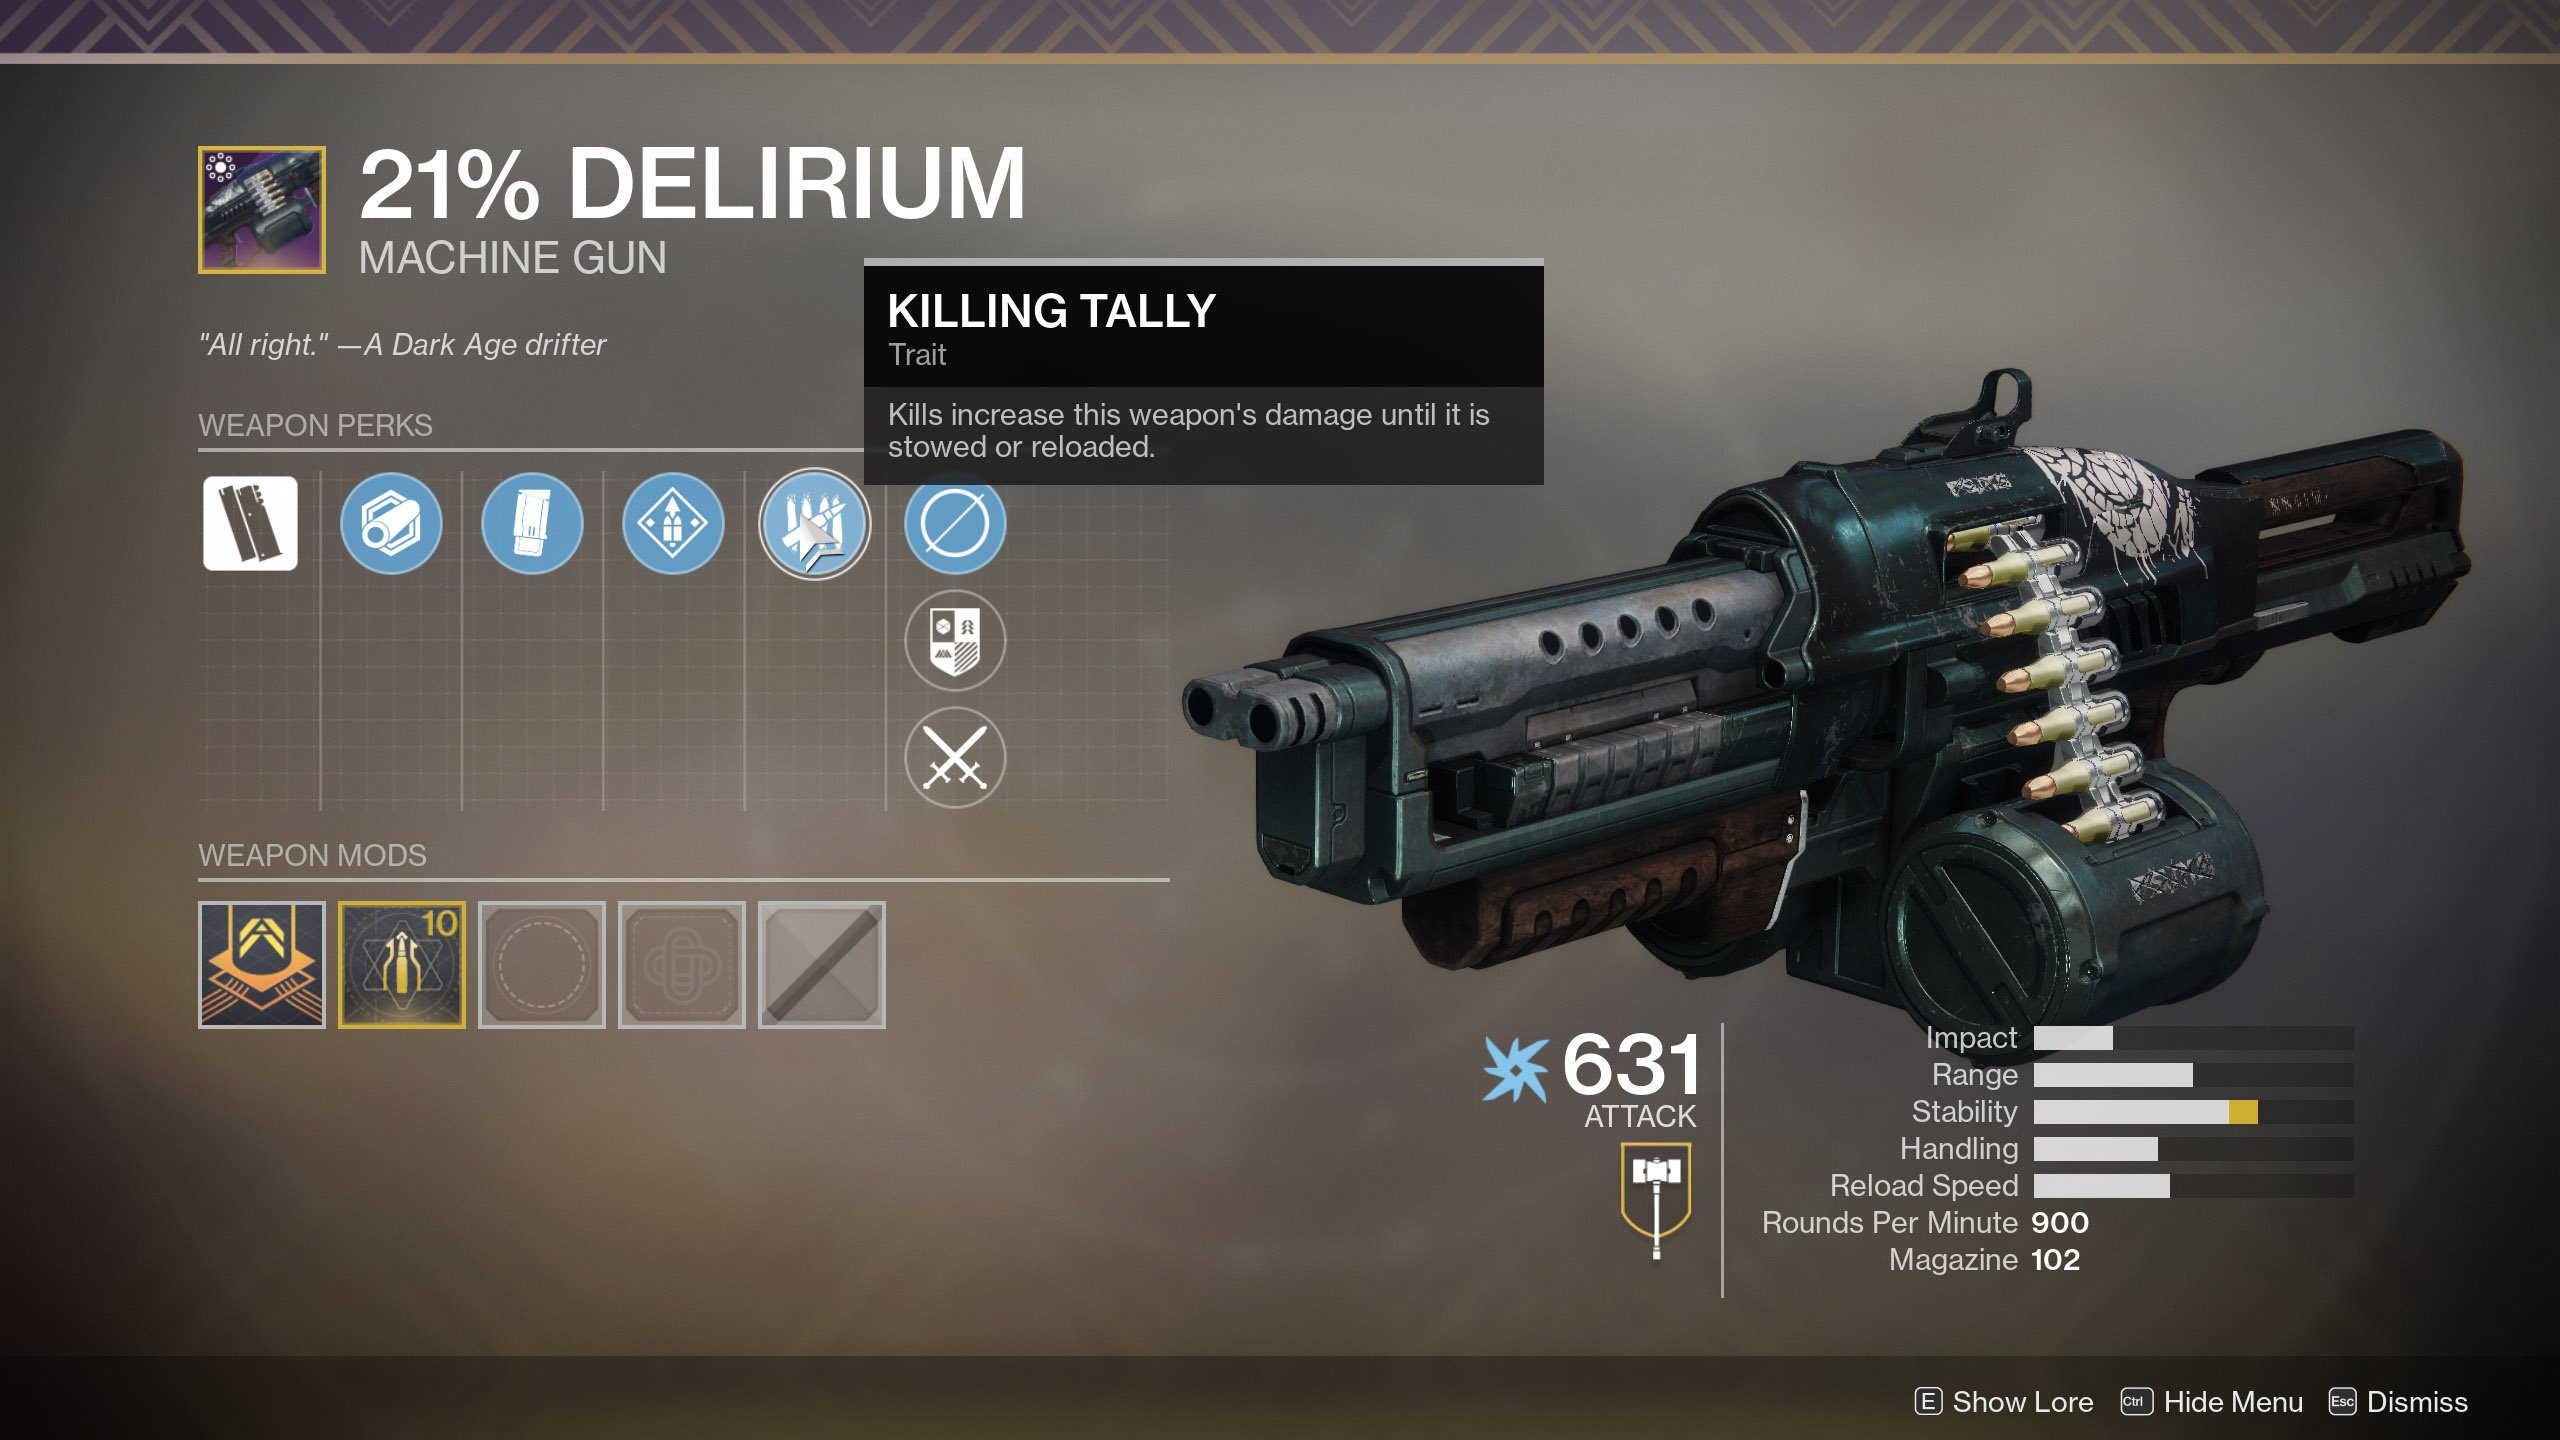 The 21% Delirium requires you to reset Infamy rank in Destiny 2